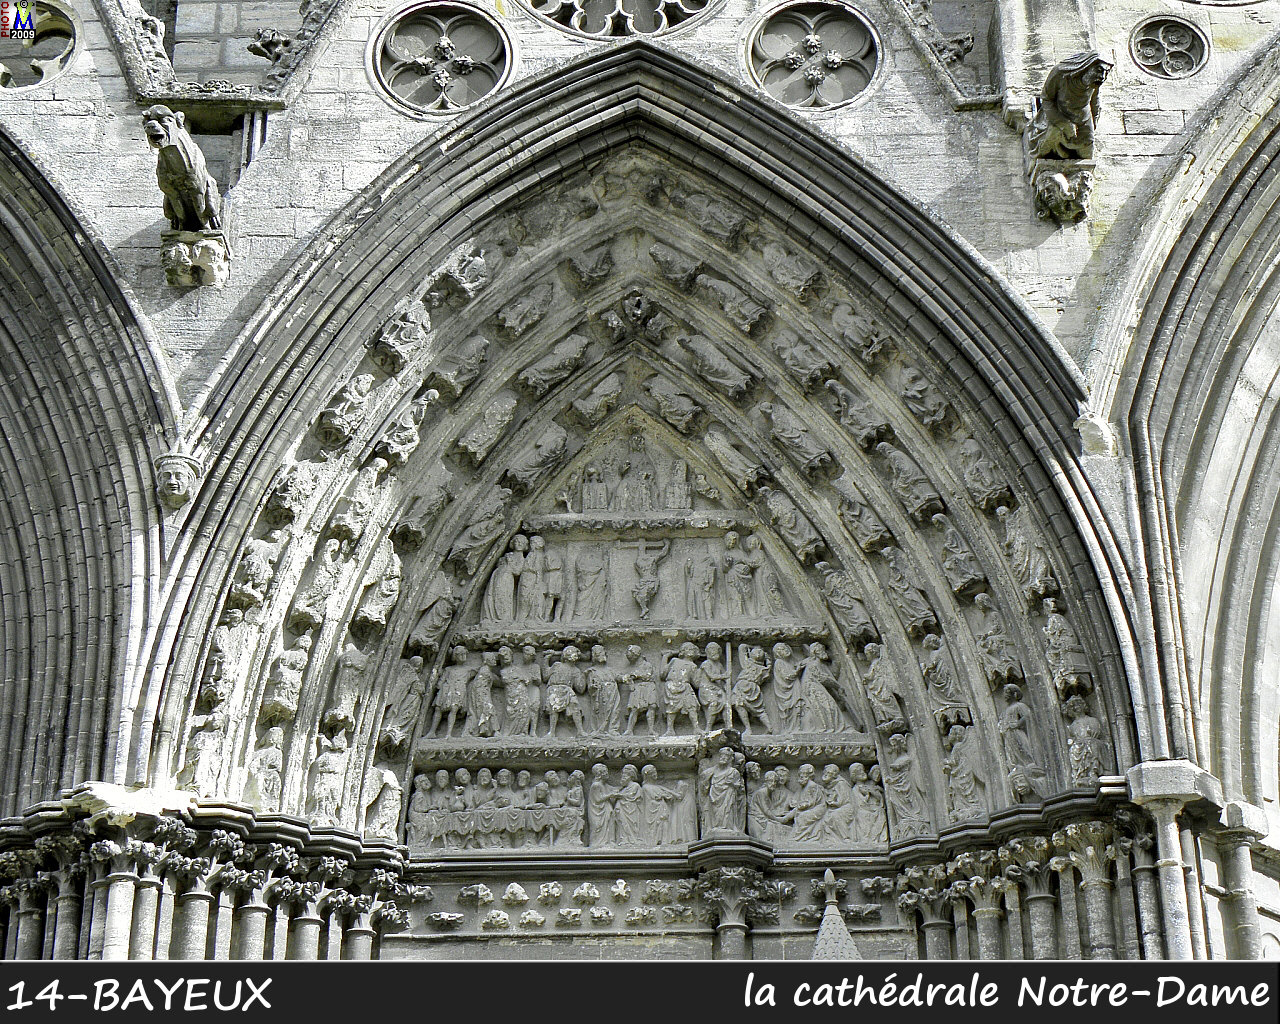 14BAYEUX_cathedrale_132.jpg